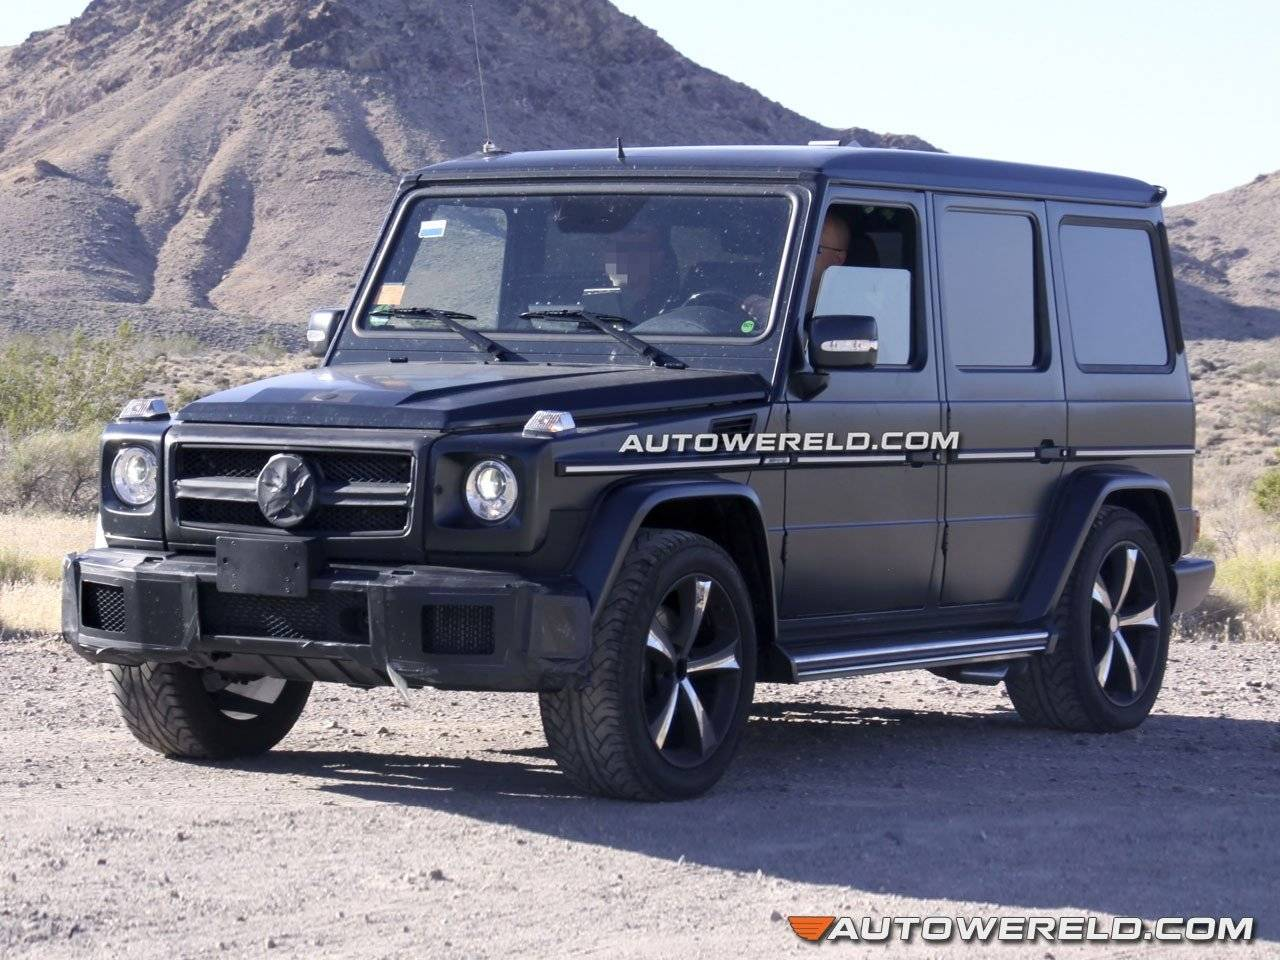 facelift en modernere amg v8 voor mercedes g klasse spyshots. Black Bedroom Furniture Sets. Home Design Ideas